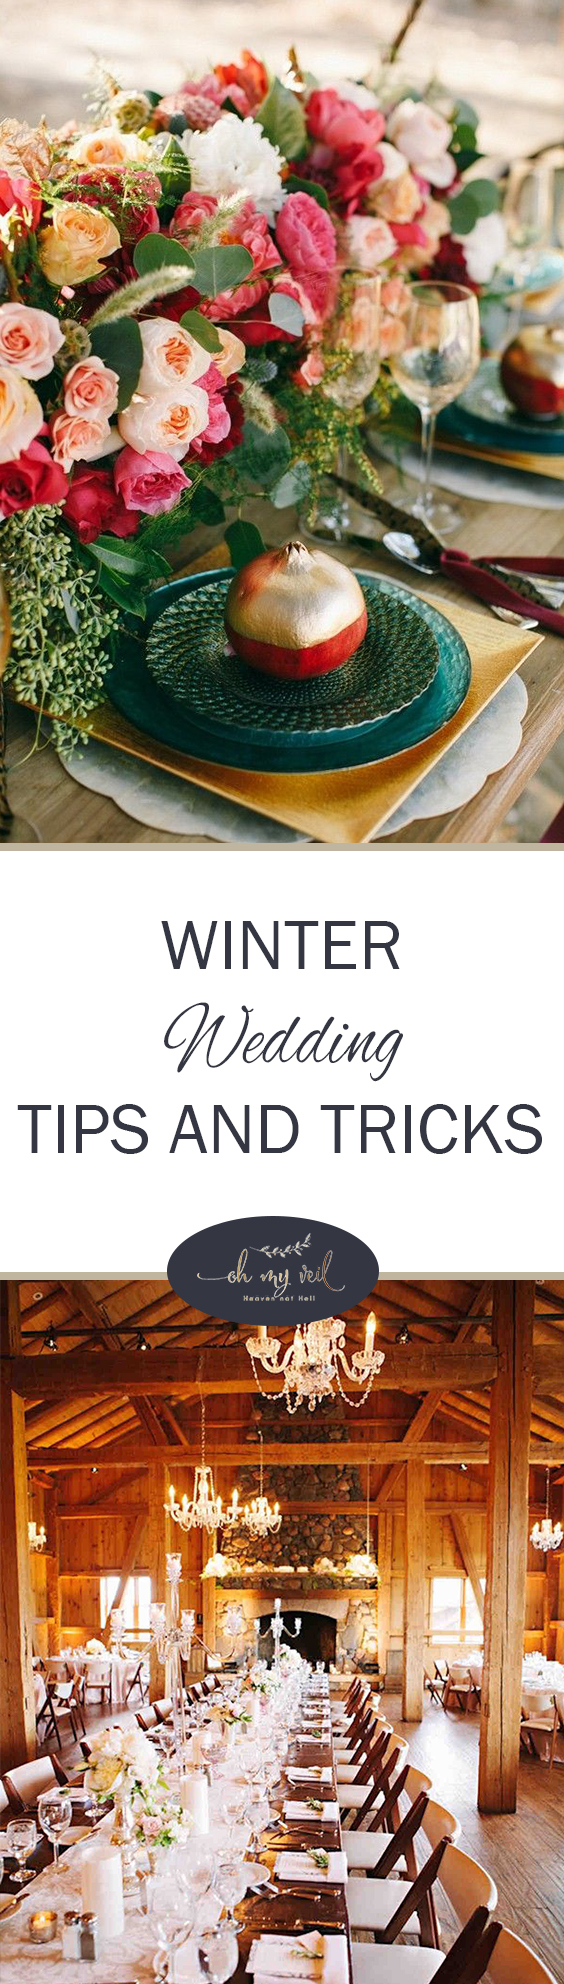 Winter Wedding Tips and Tricks| Winter Wedding, Winter Wedding Hacks, Wedding Tips and Tricks, Winter Wedding Planning, Winter Wedding Themes #Winter #WinterWedding #Wedding #WeddingTips